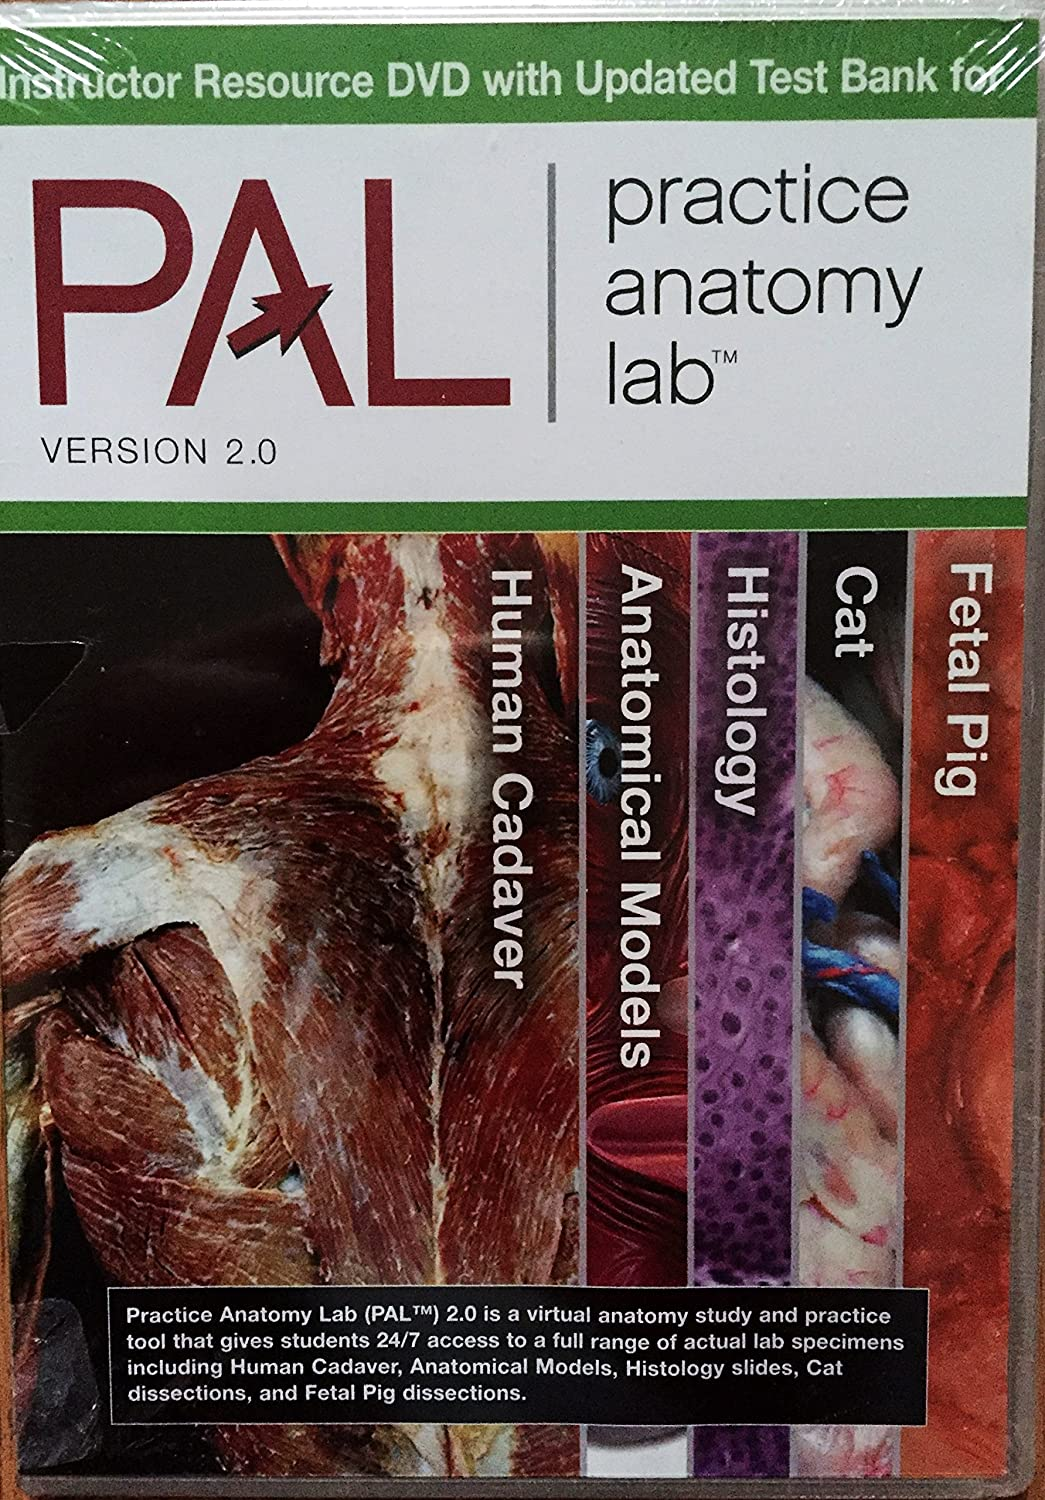 Amazon.com: Practice Anatomy Lab Instructor Resource DVD